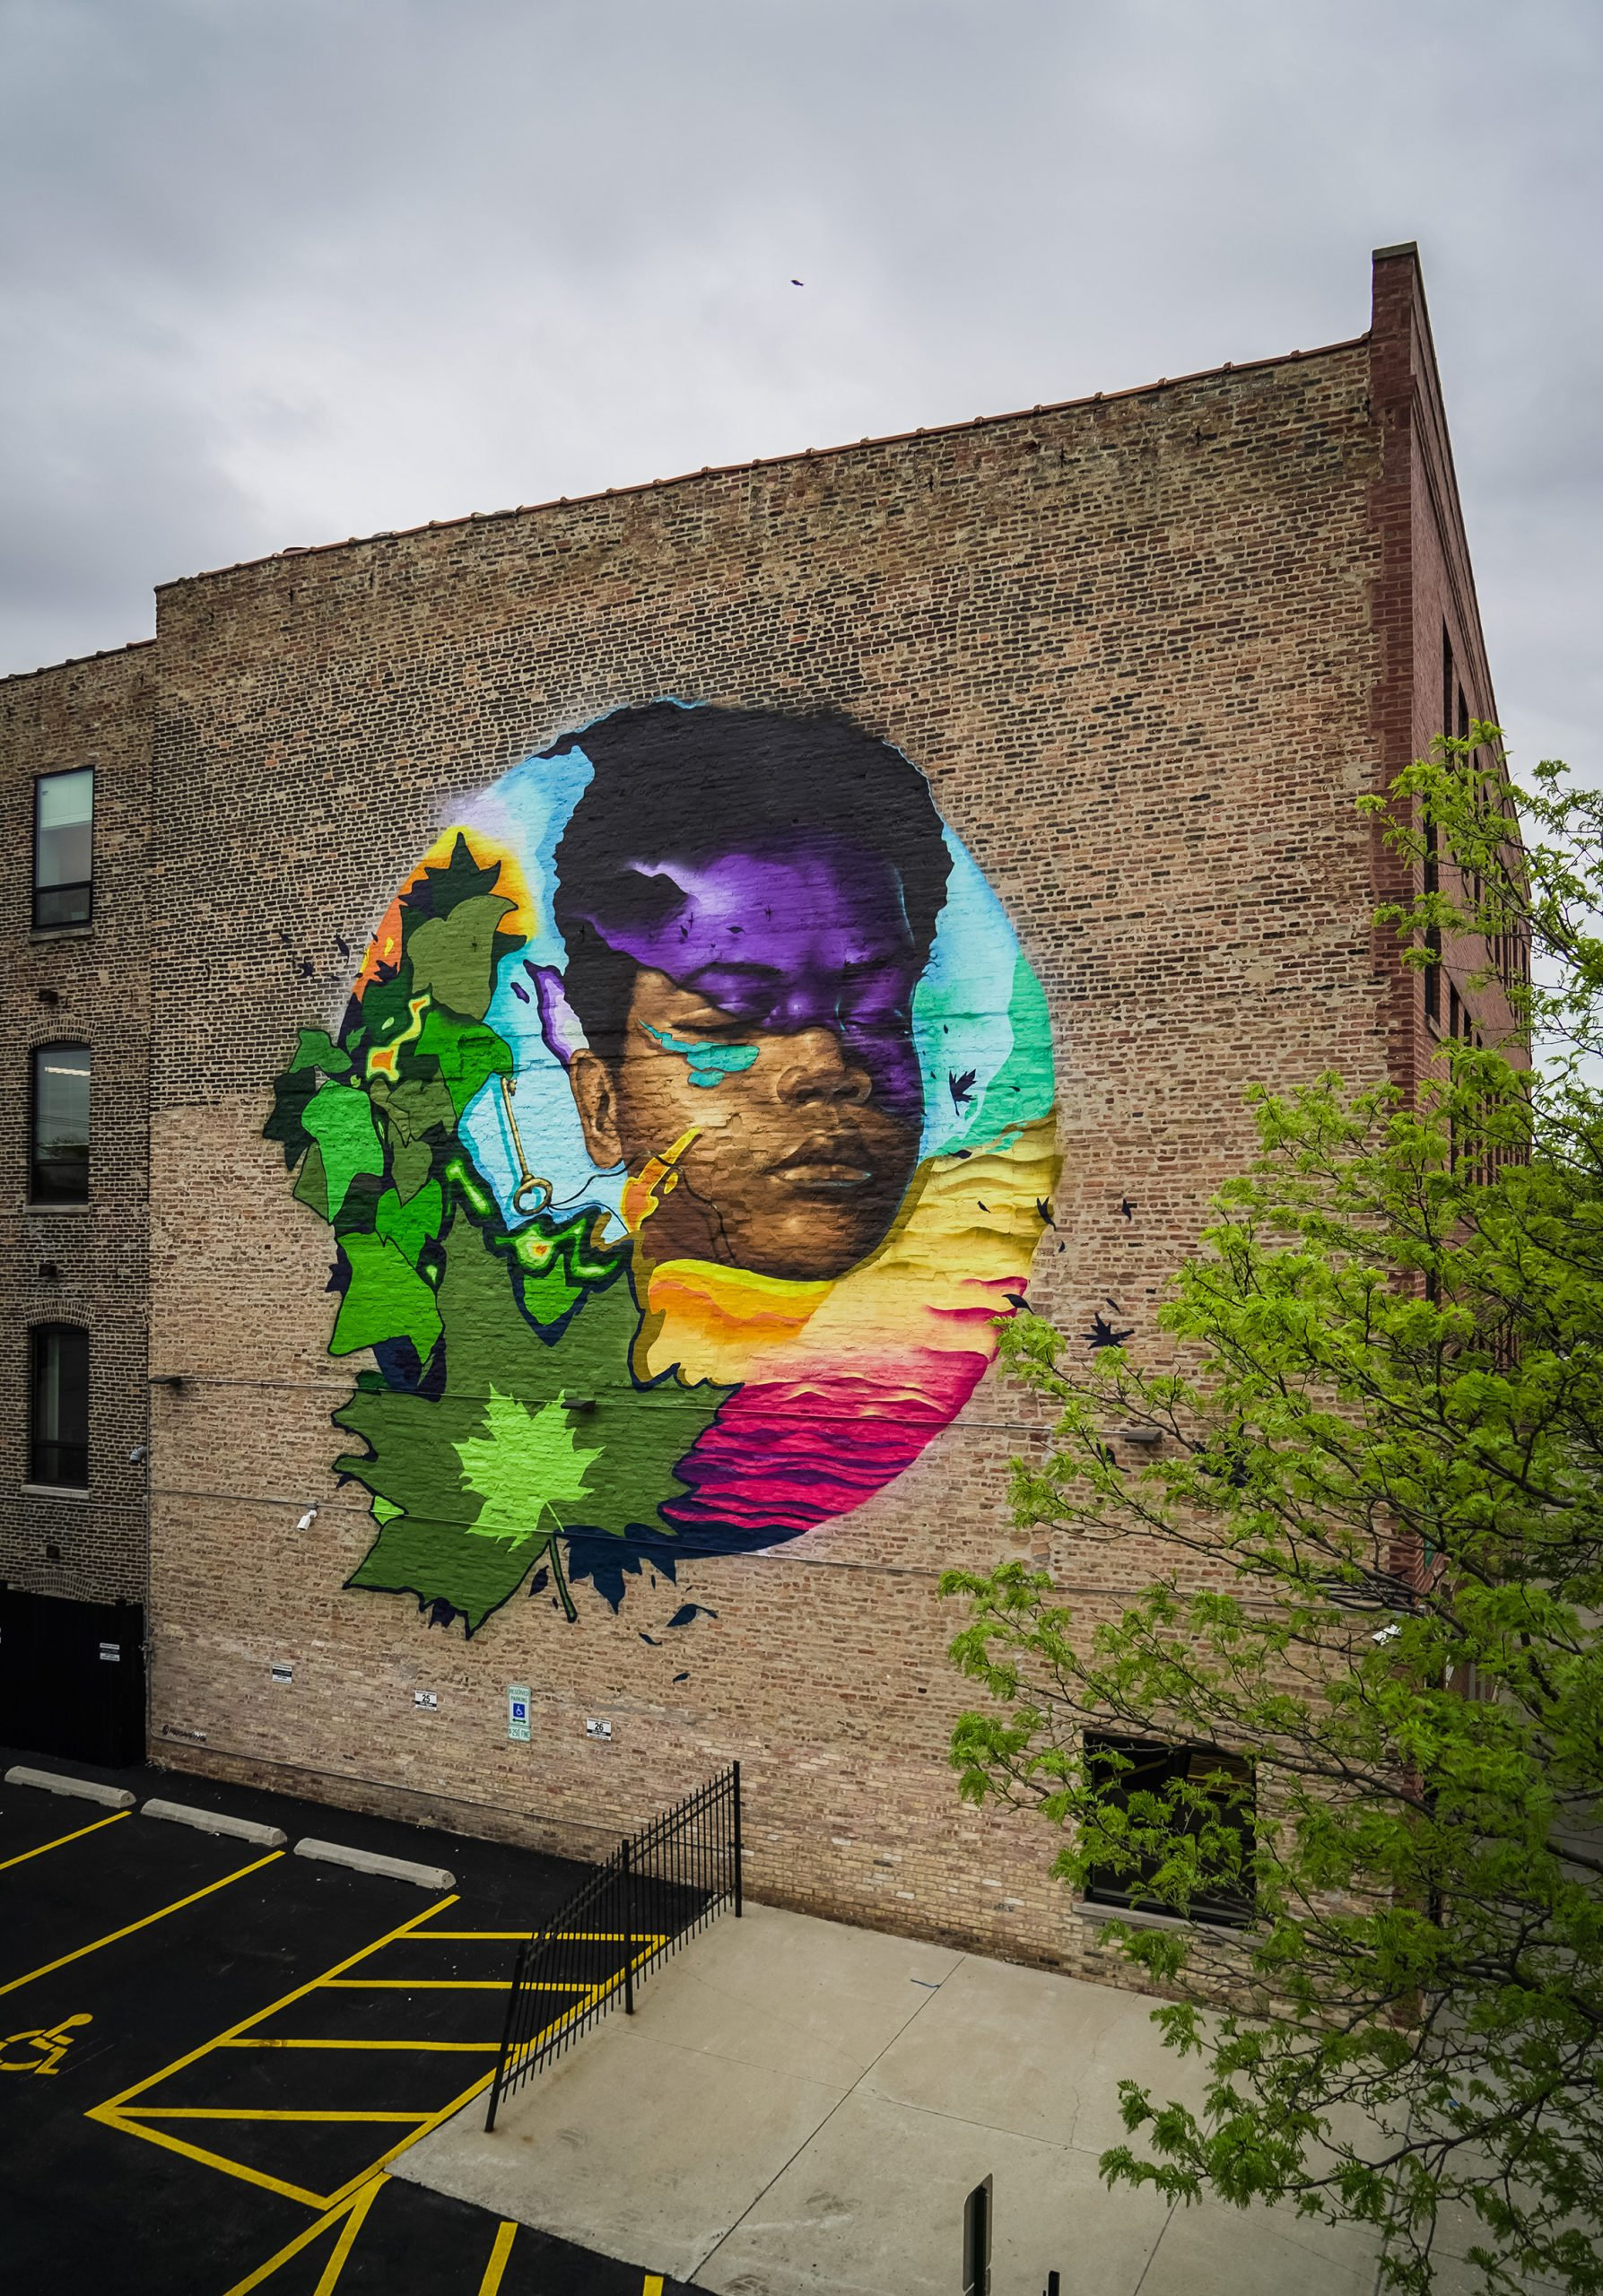 Murals For Medical Relief Mural in Chicago by Max Sansing